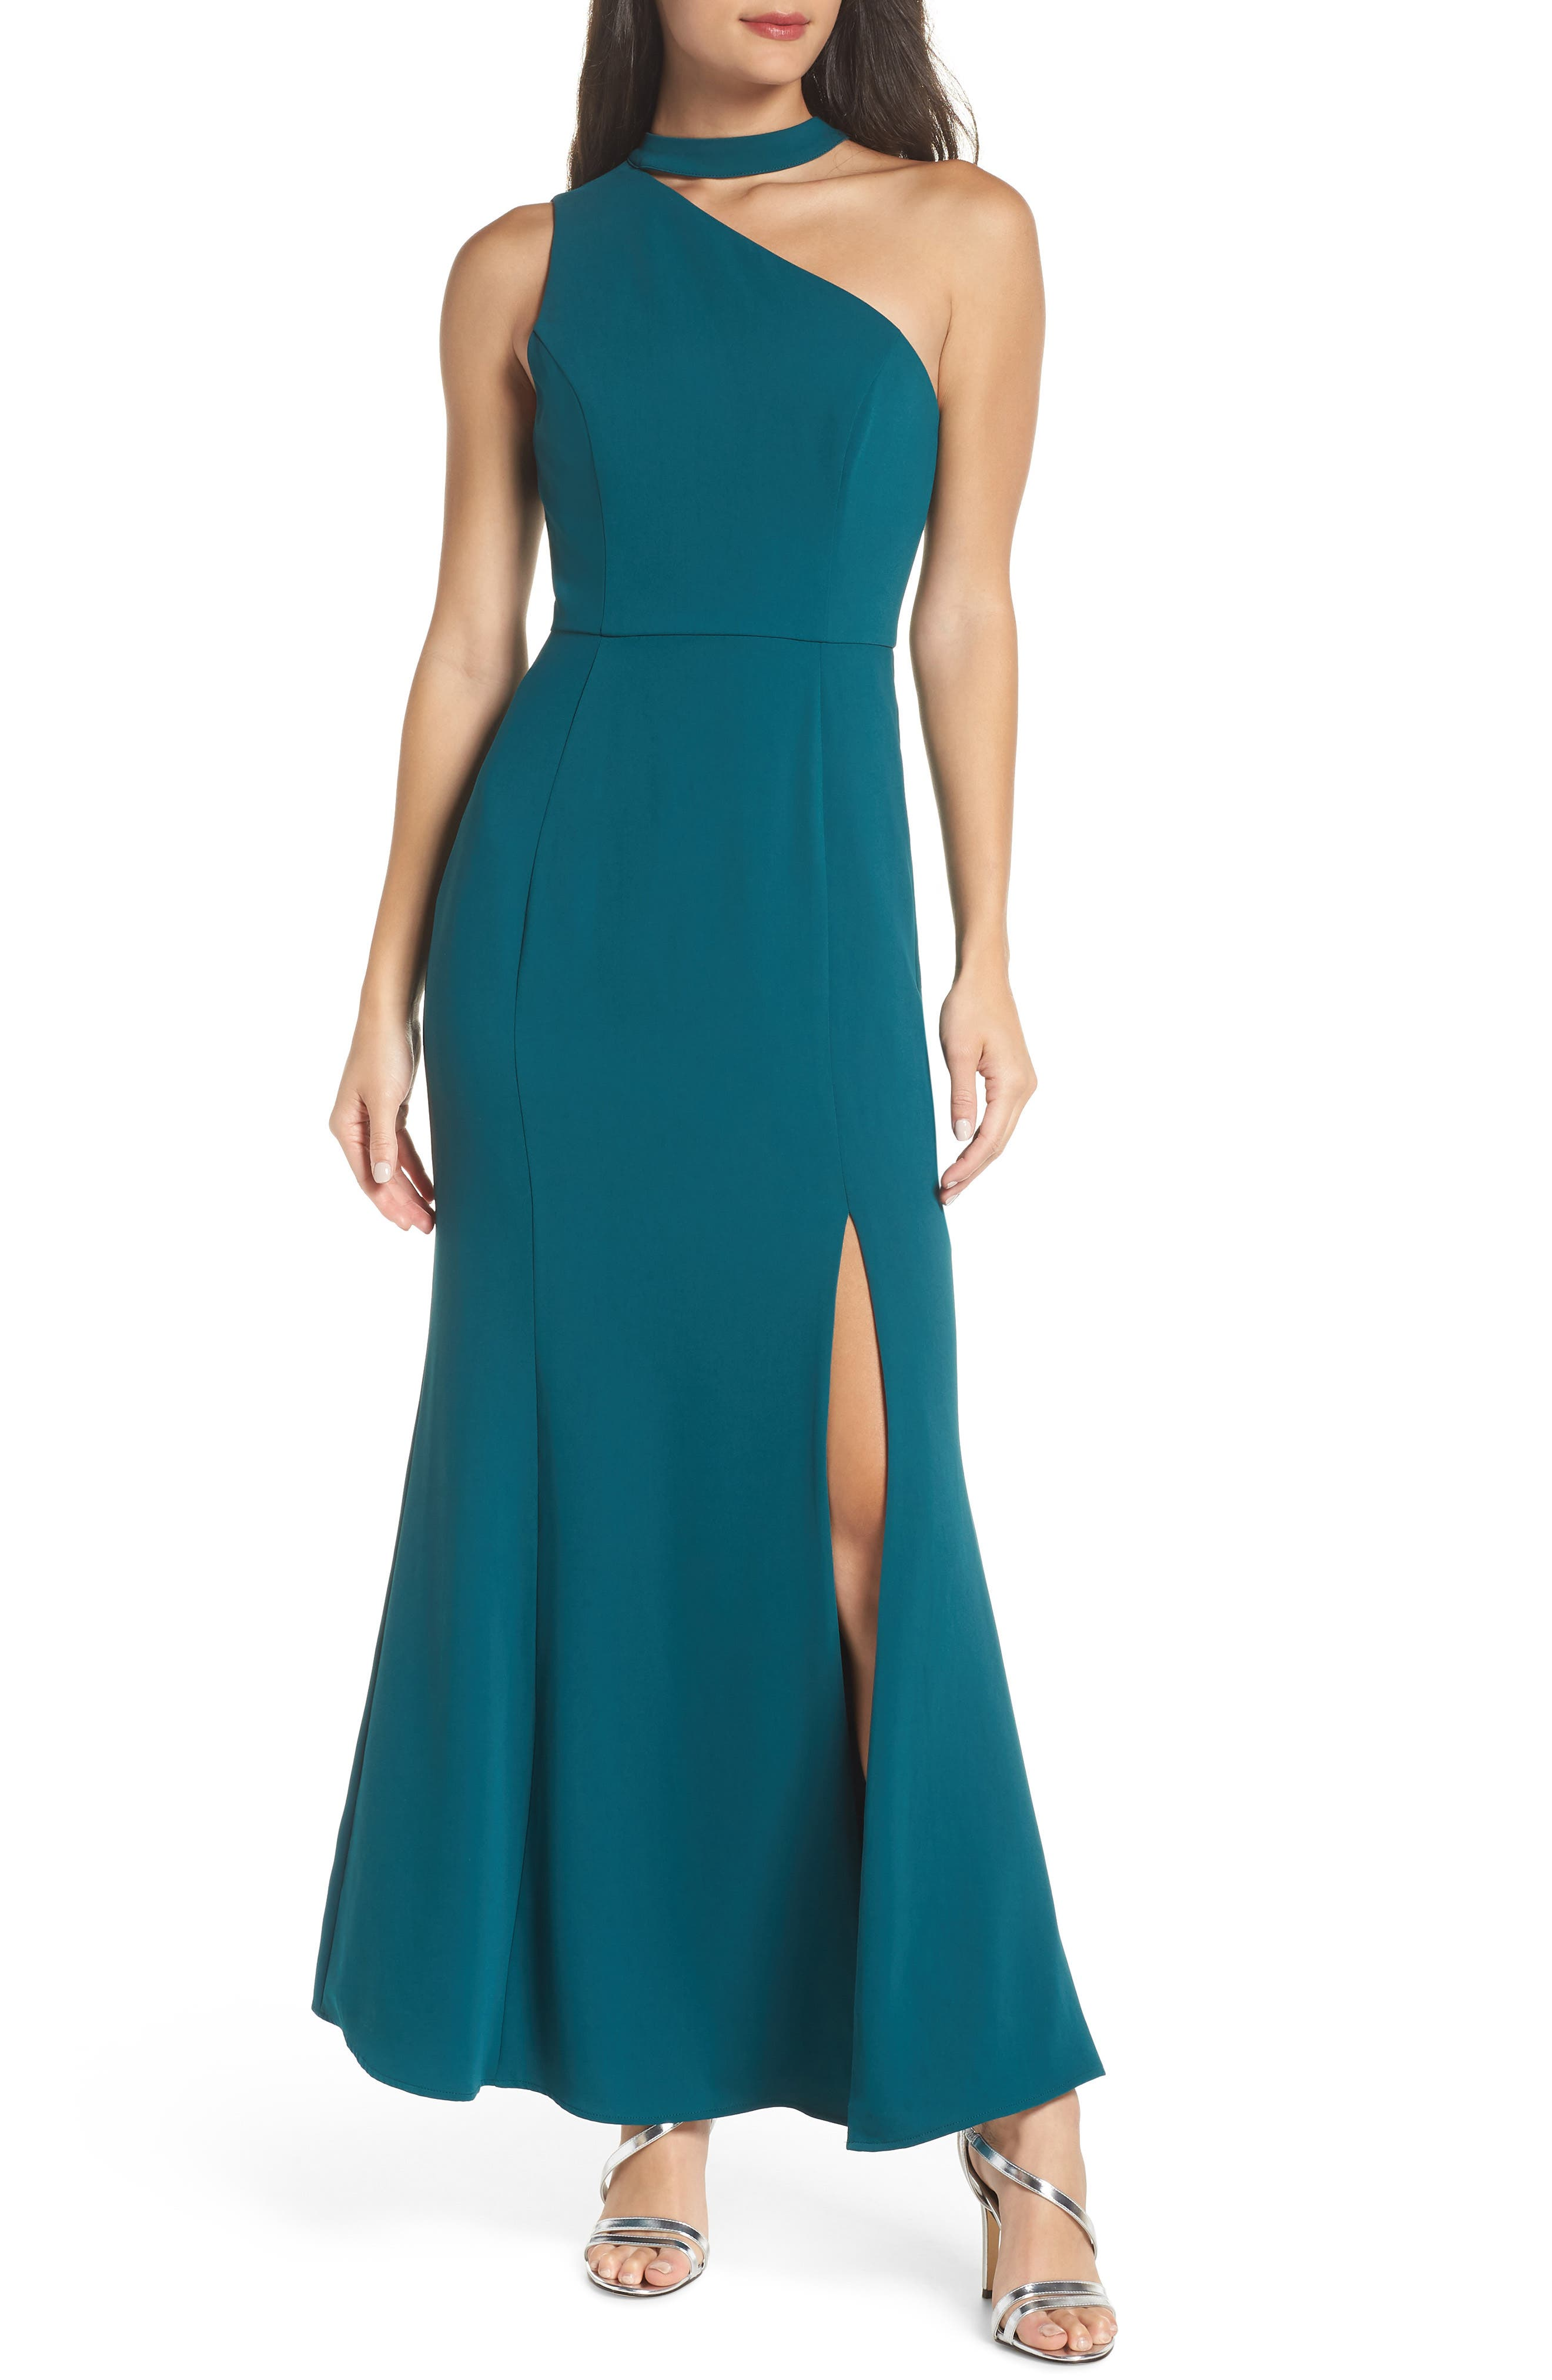 HARLYN One-Shoulder Choker Collar Gown in Forest Green